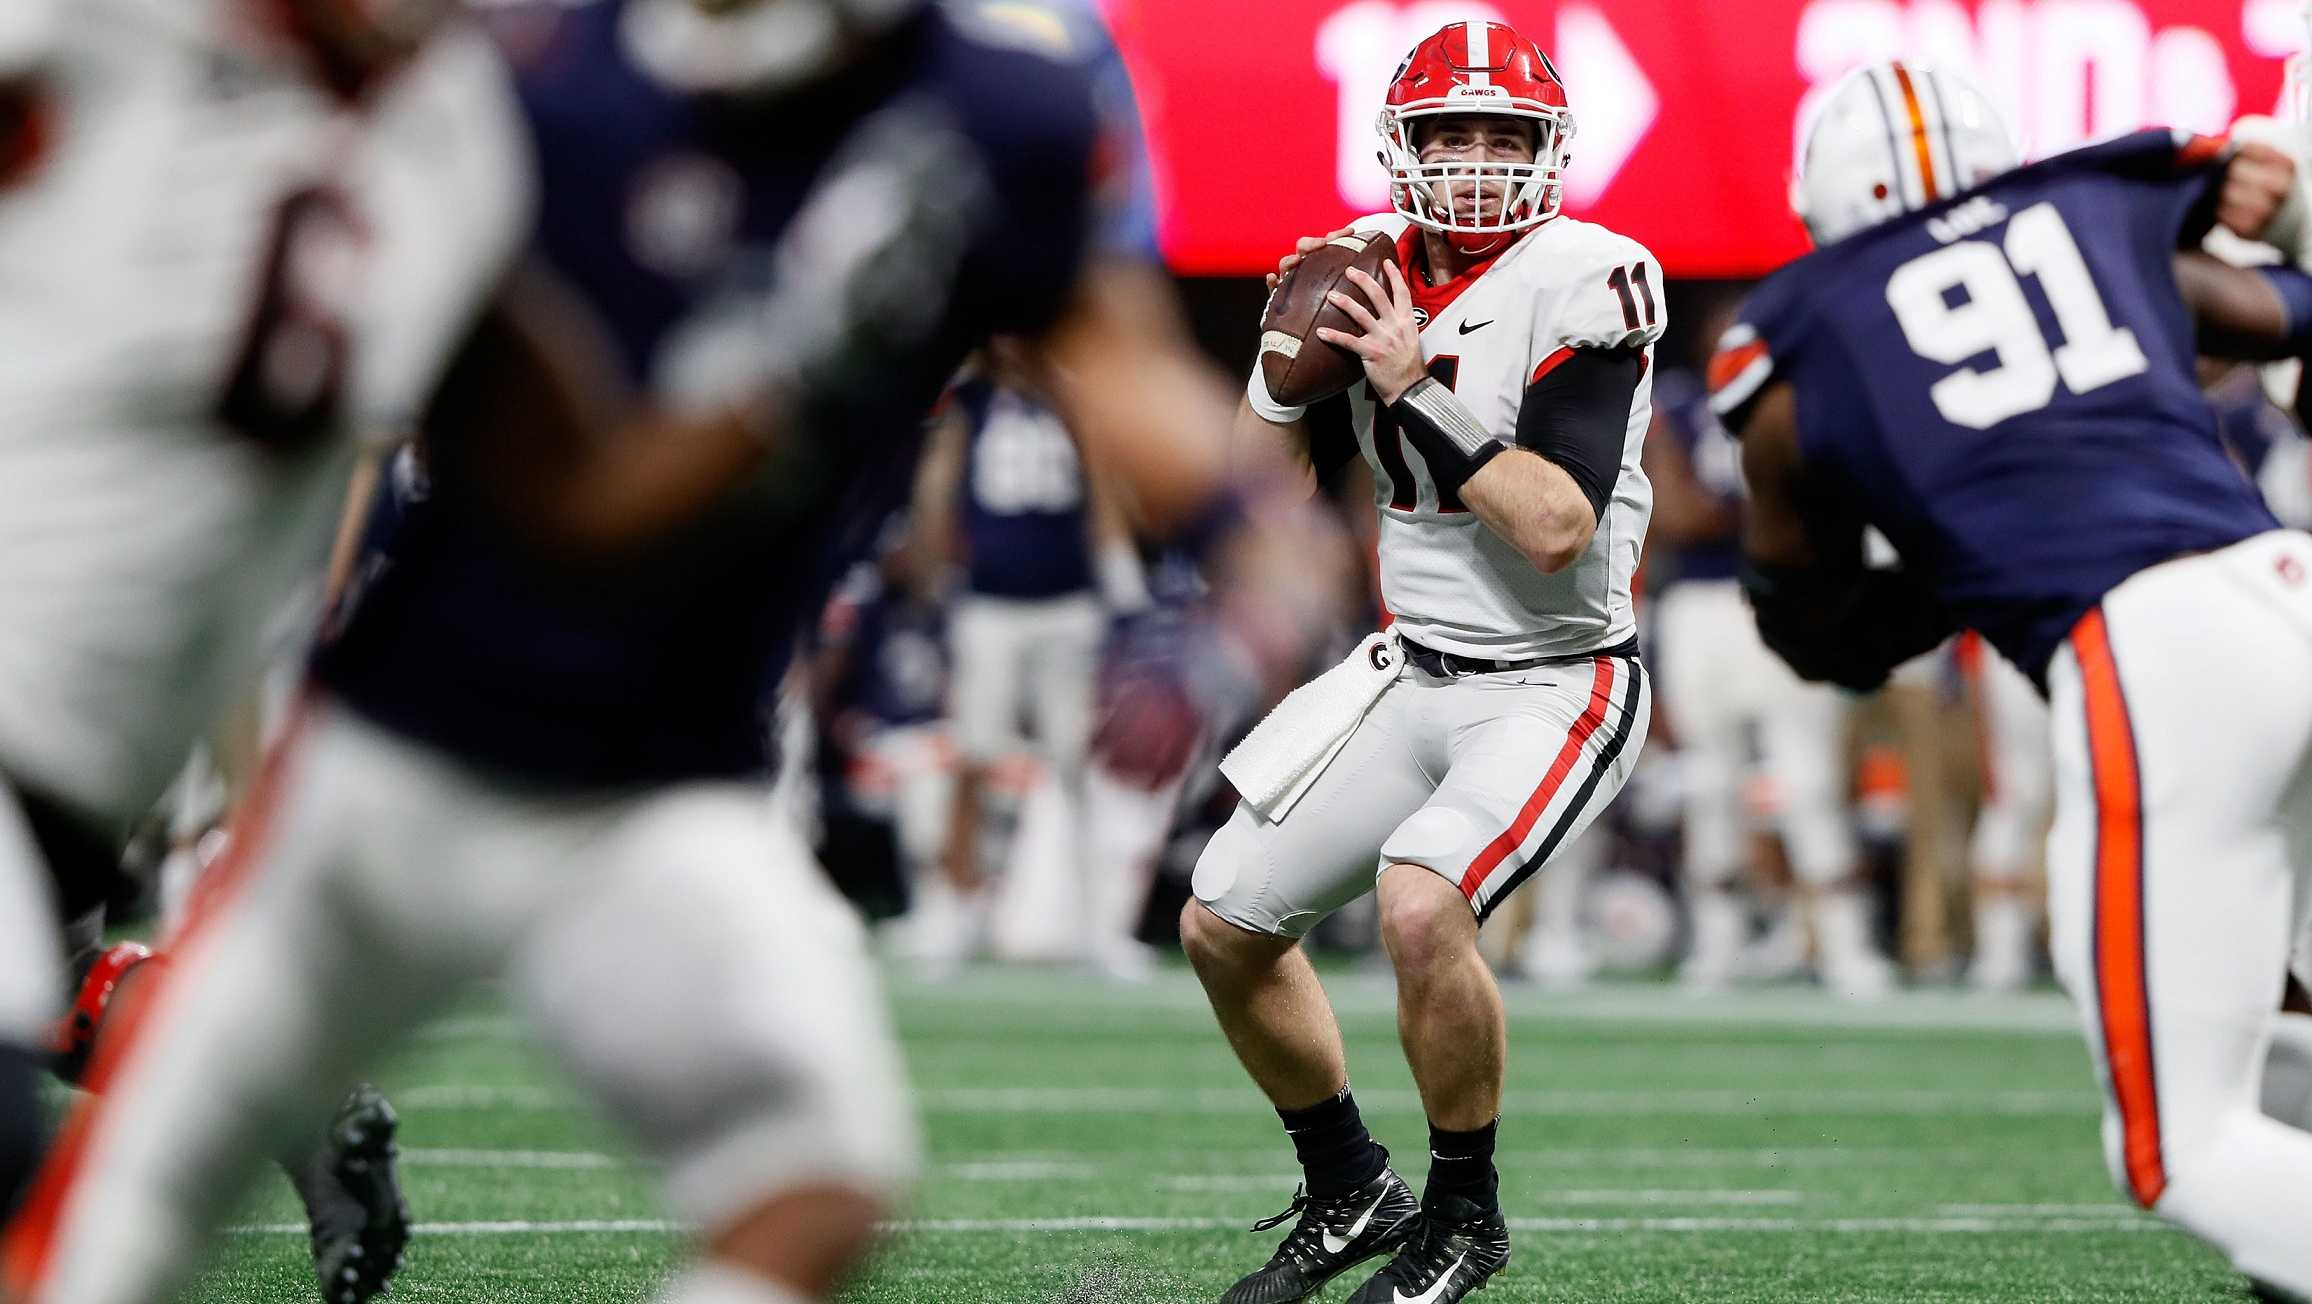 Jake Fromm, #11 of the Georgia Bulldogs, drops back to pass during the first half against the Auburn Tigers in the SEC Championship at Mercedes-Benz Stadium on December 2, 2017 in Atlanta, Georgia.